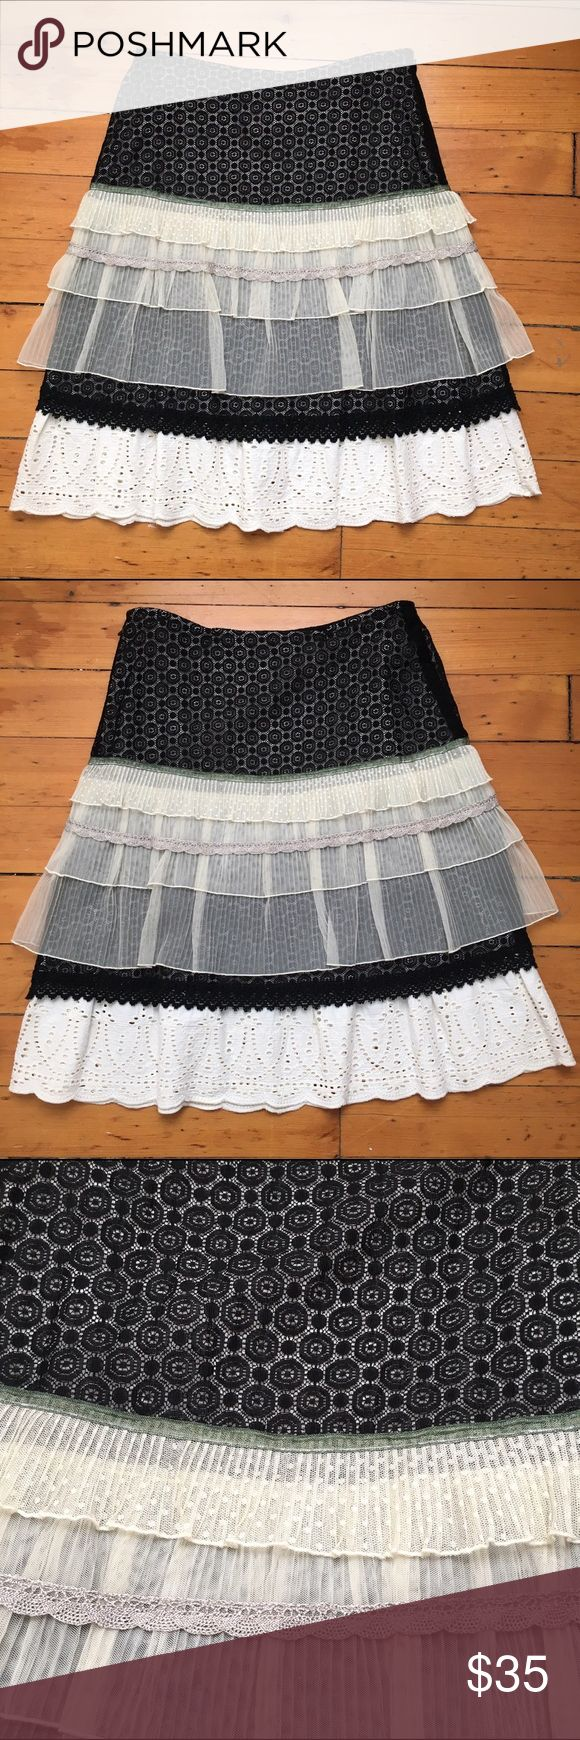 Snak Layered Ruffle Skirt Anthropologie brand Snak A line skirt with lace and eyelet detailing and mesh layers. Side zip, EUC. Anthropologie Skirts A-Line or Full